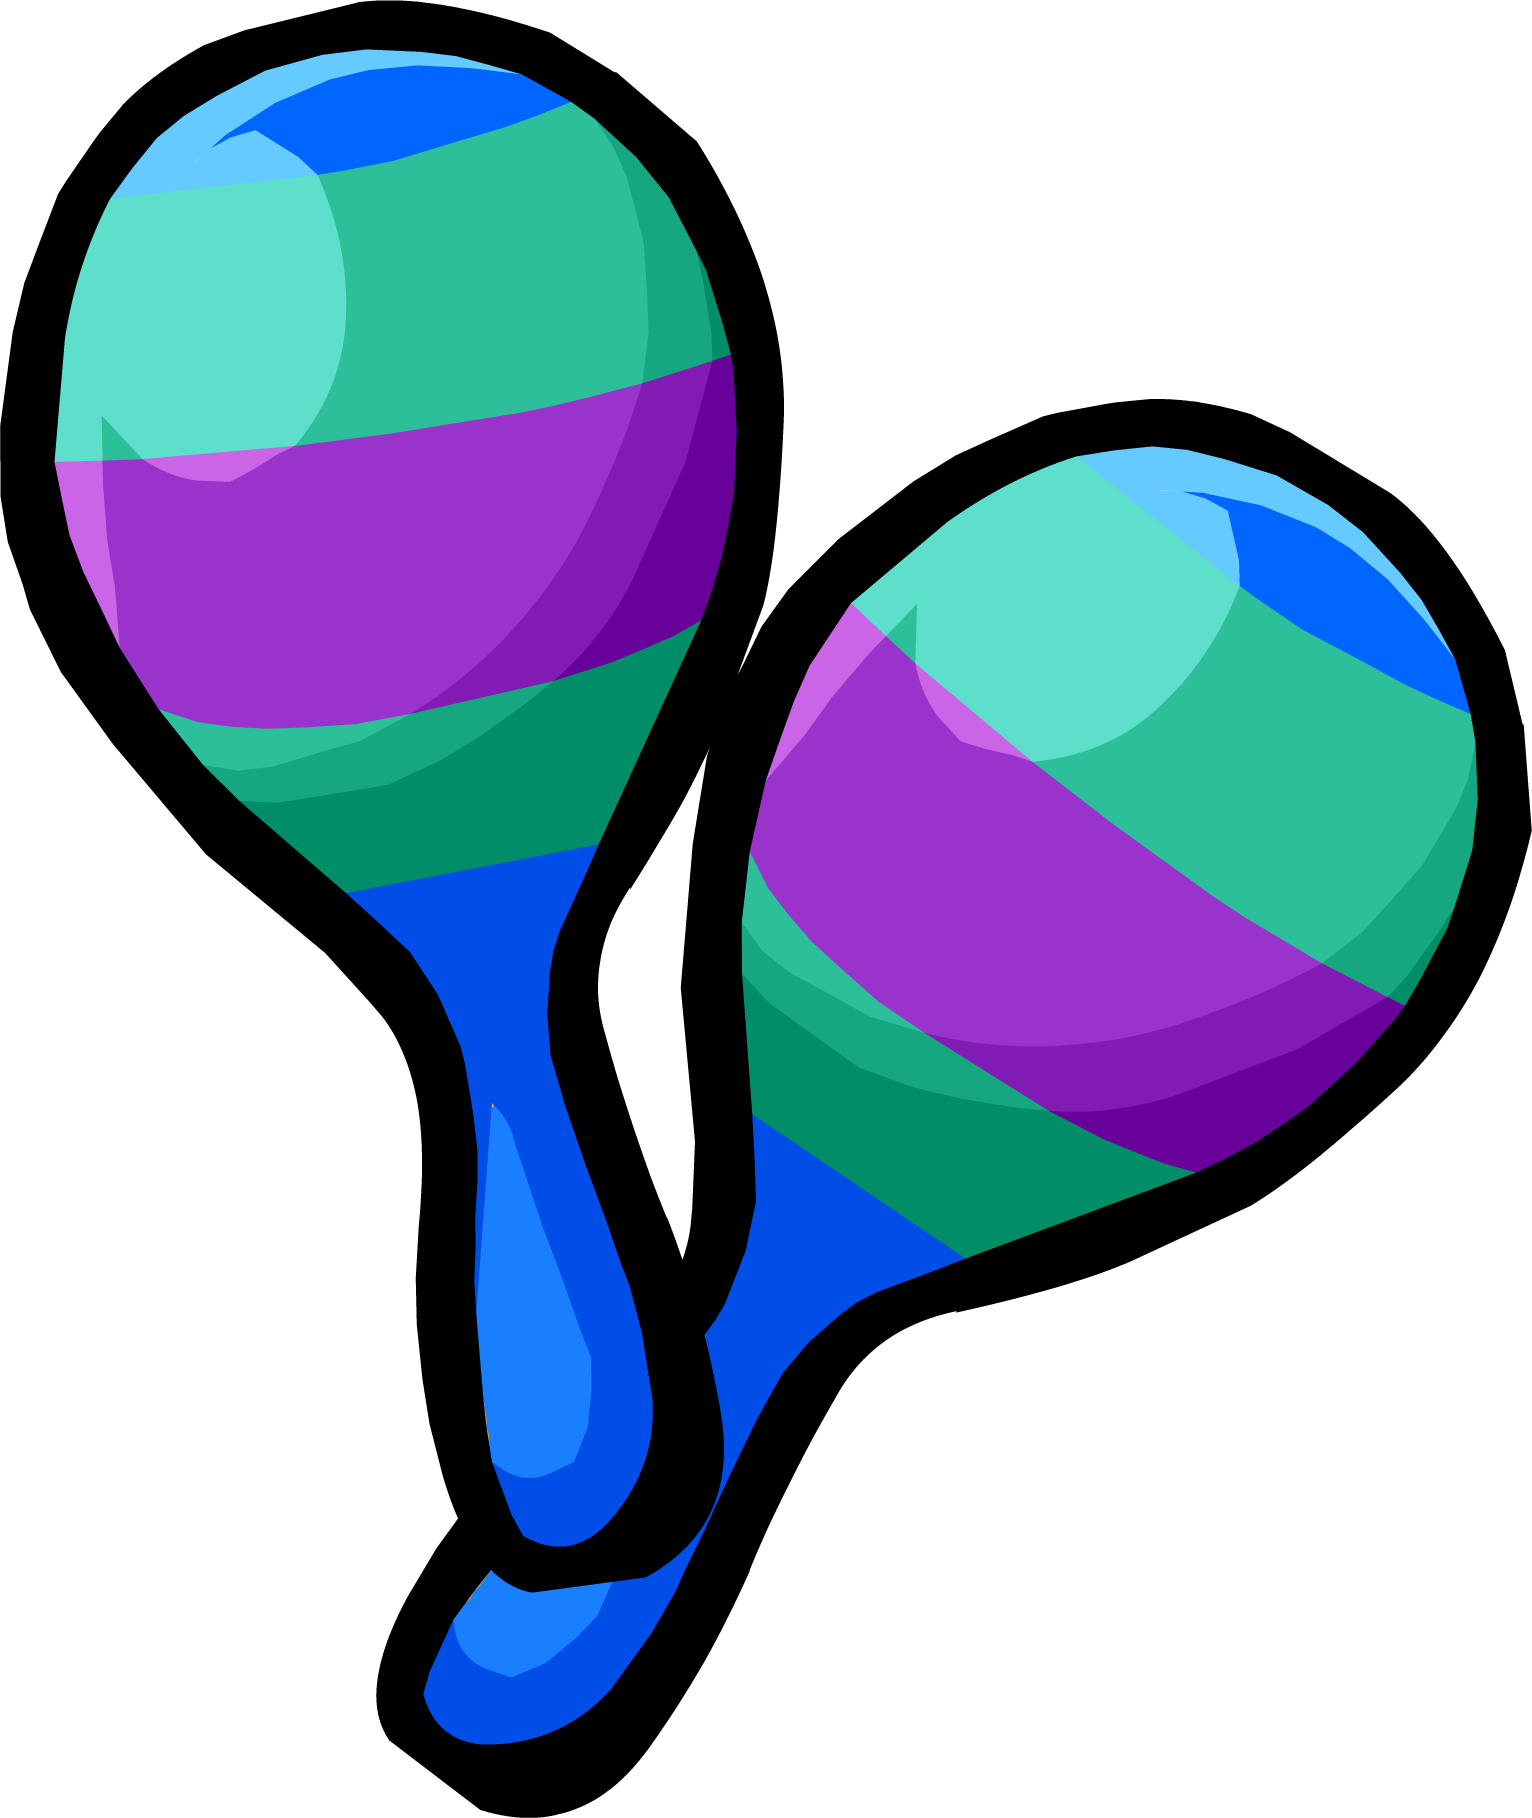 Green and Blue Maracas